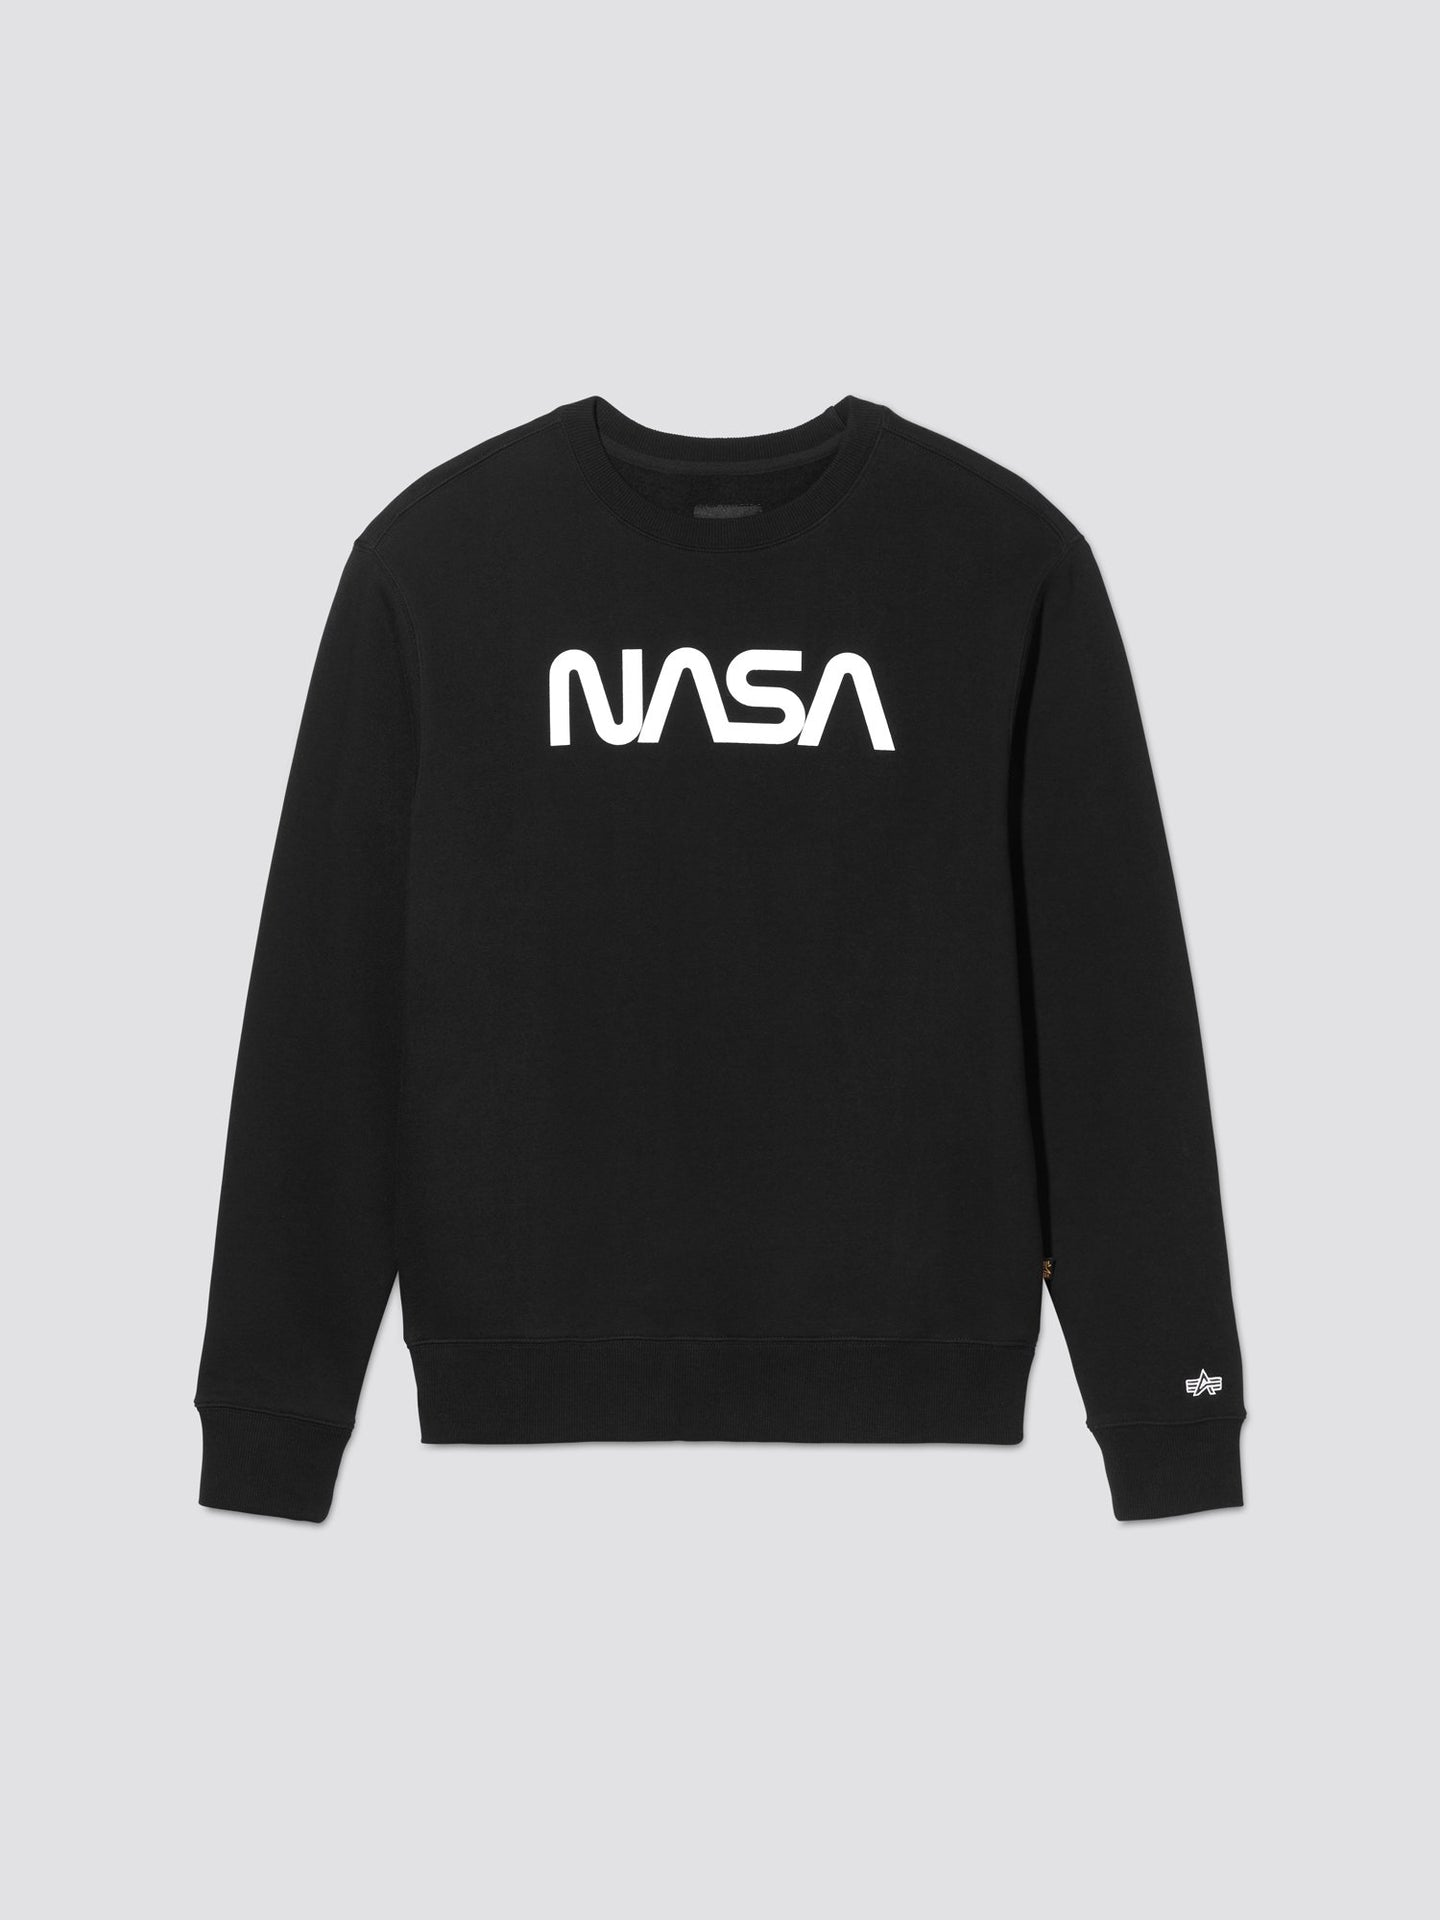 NASA II CREW SWEATSHIRT TOP Alpha Industries, Inc. BLACK 2XL